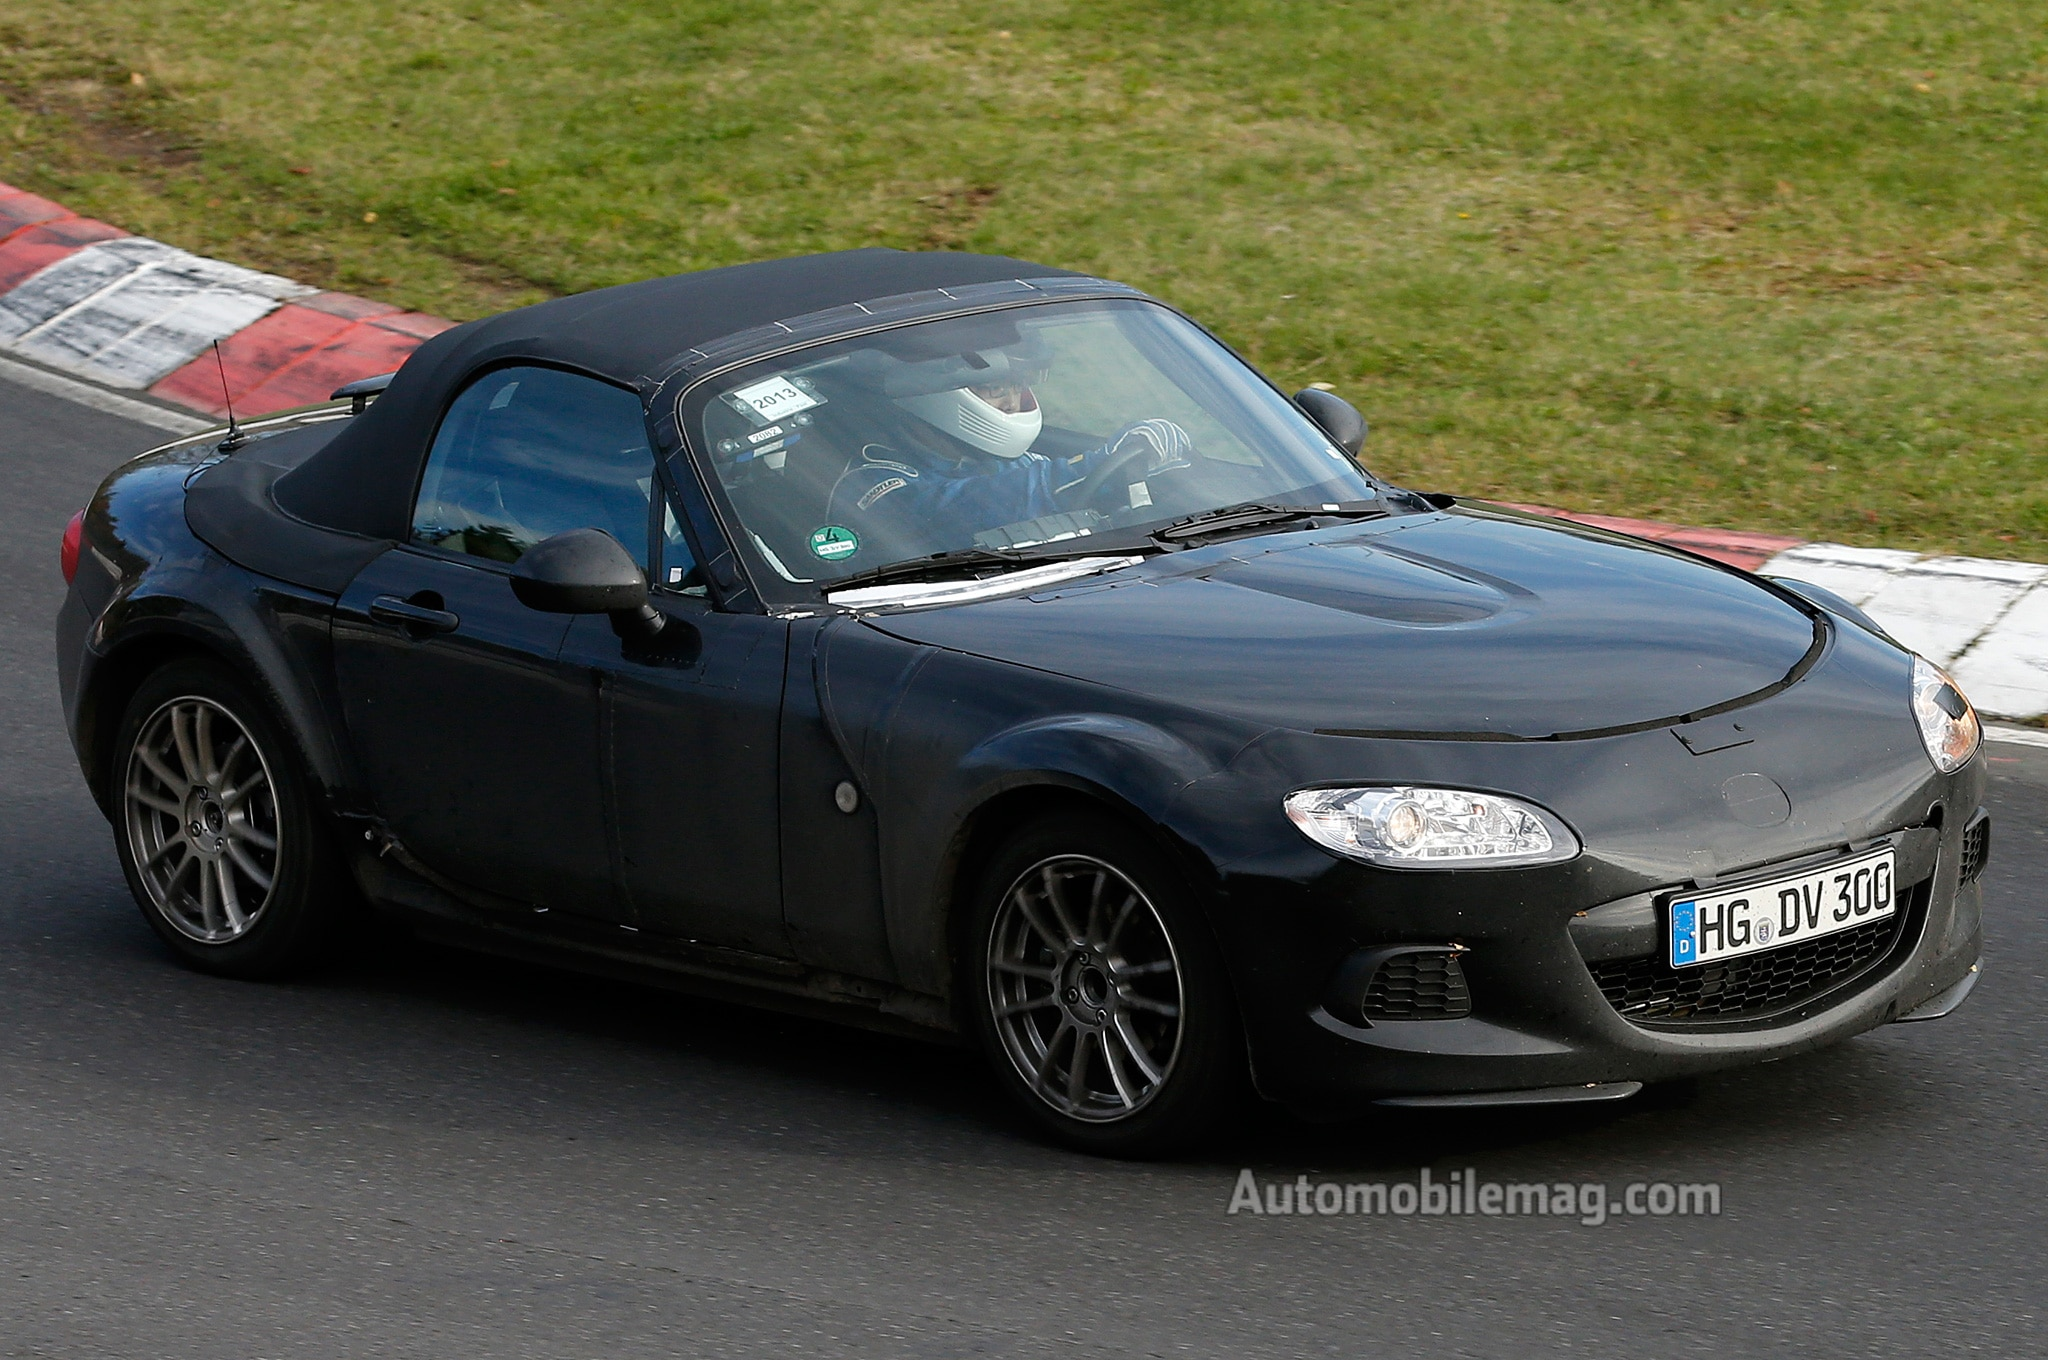 2015 Mazda MX 5 Miata Prototype Front Three Quarters View1